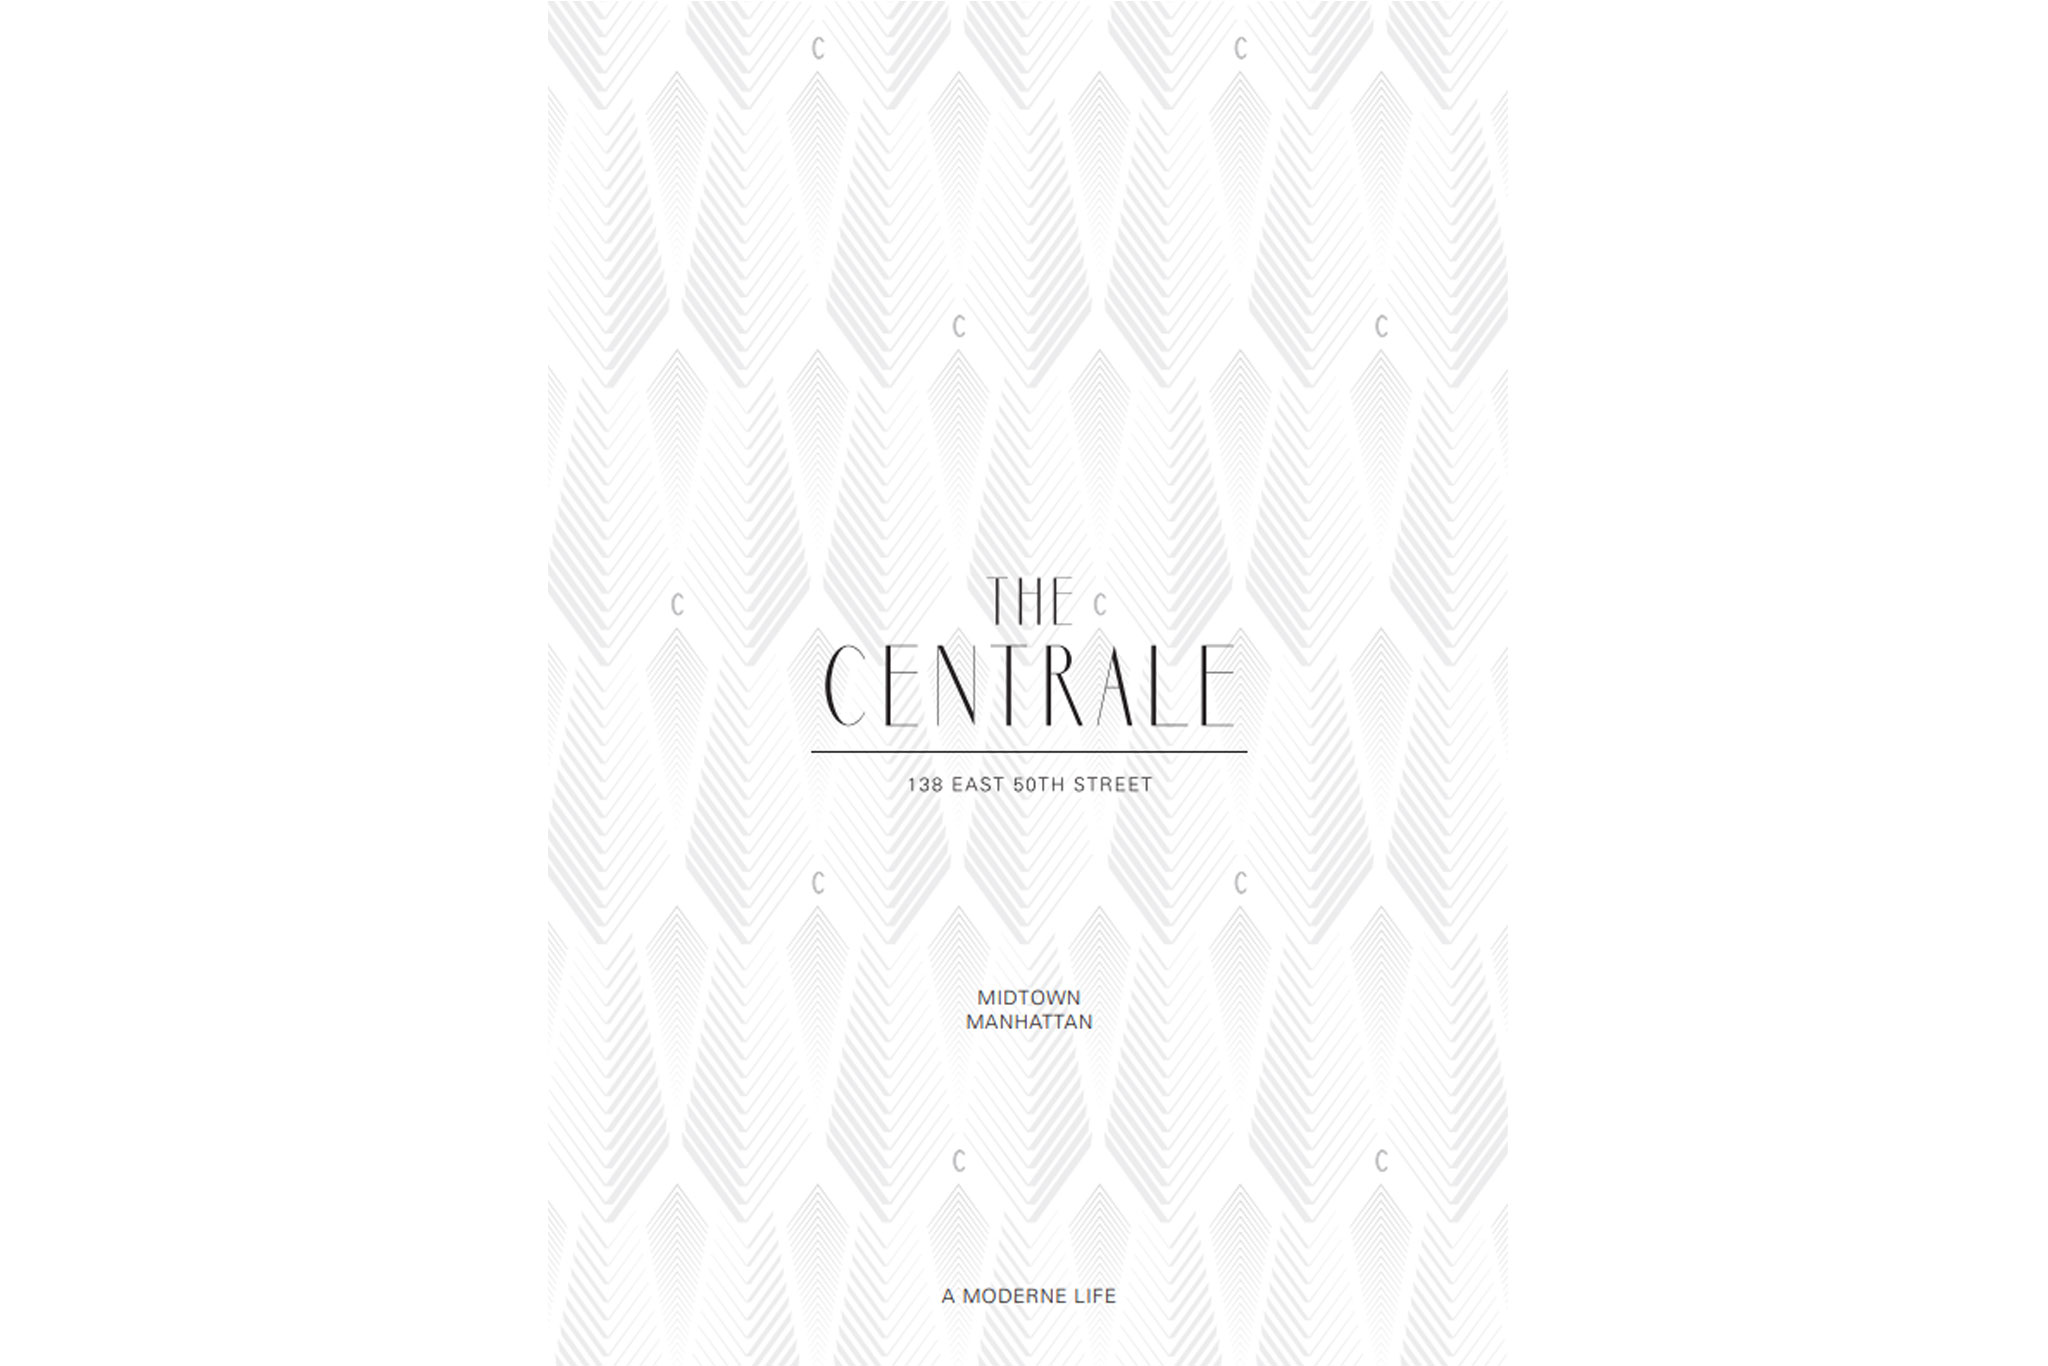 The Centrale